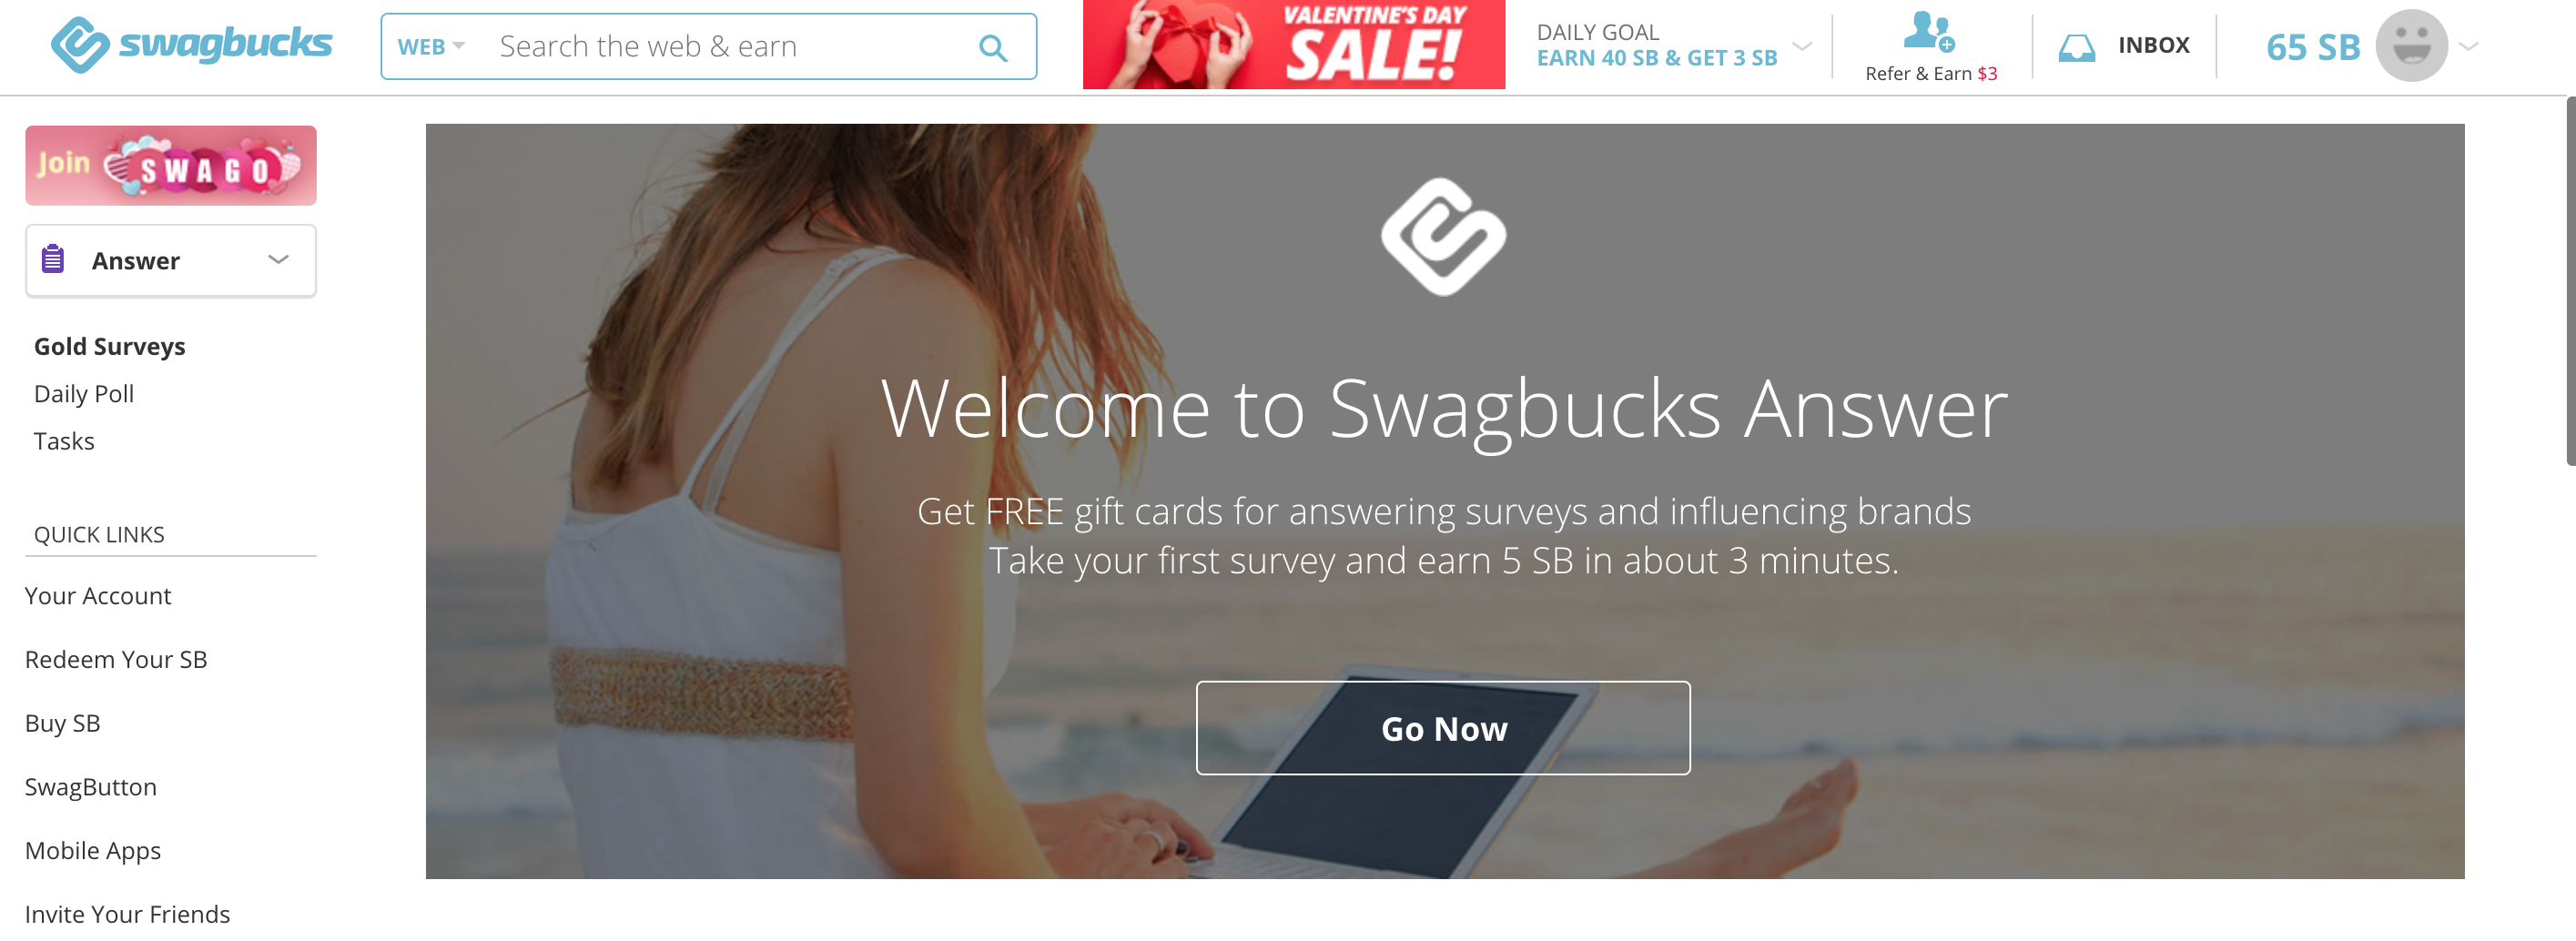 welcome to swagbucks answer